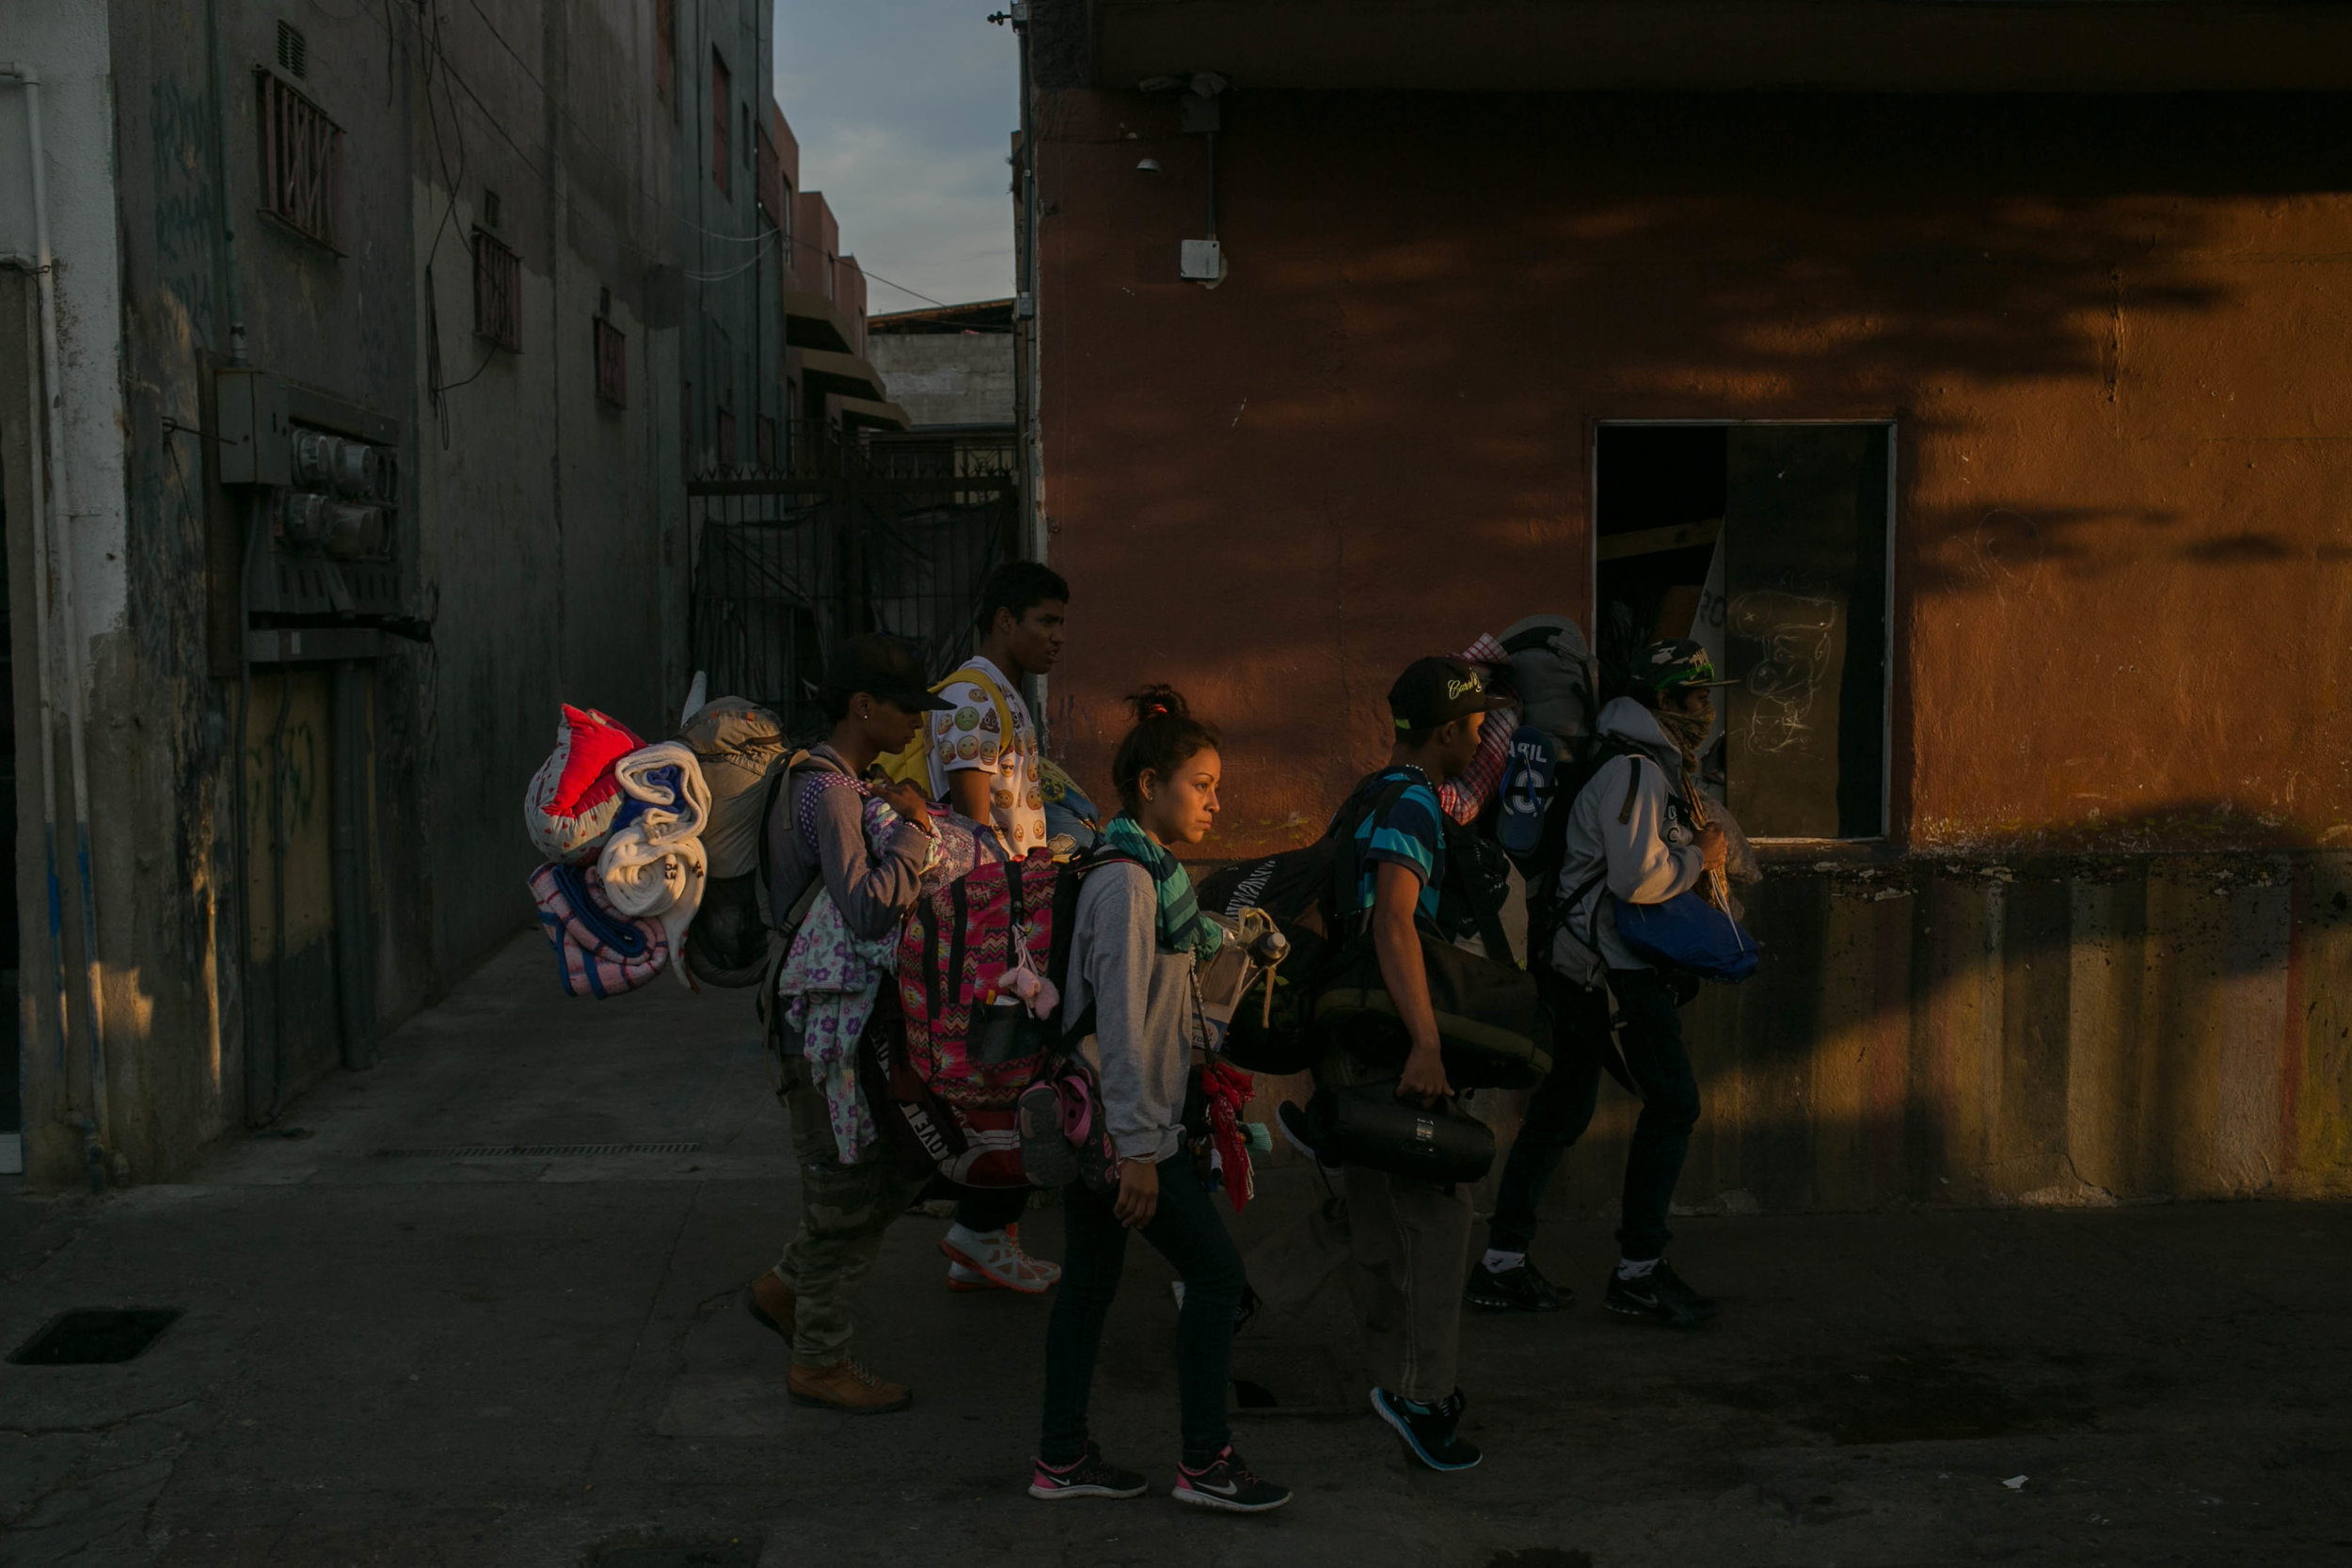 "MEGHAN DHALIWAL  www.meghandhaliwal.com  |  @meghandhaliwal   A group of young Central Americans walk from one shelter to another after the first shelter ran out of room in Tijuana, Baja California Norte, Mexico on April 25, 2018. The group will join about twenty others in sleeping in church pews or on the floor of a shelter in Tijuana's centro. They are on day 31 of their journey to the U.S.-Mexico border, where many plan to apply for asylum. The caravan has drawn international attention after U.S. President Donald Trump's Easter-weekend tweetstorm about the arrival of the migrants on the border. In a statement today, DHS Secretary Kirstjen Nielsen threatened caravan members with prosecution if they ""make a false immigration claim.""  From The New York Times:    After Arduous Journey, Migrants See Stubborn Obstacle: Trump"